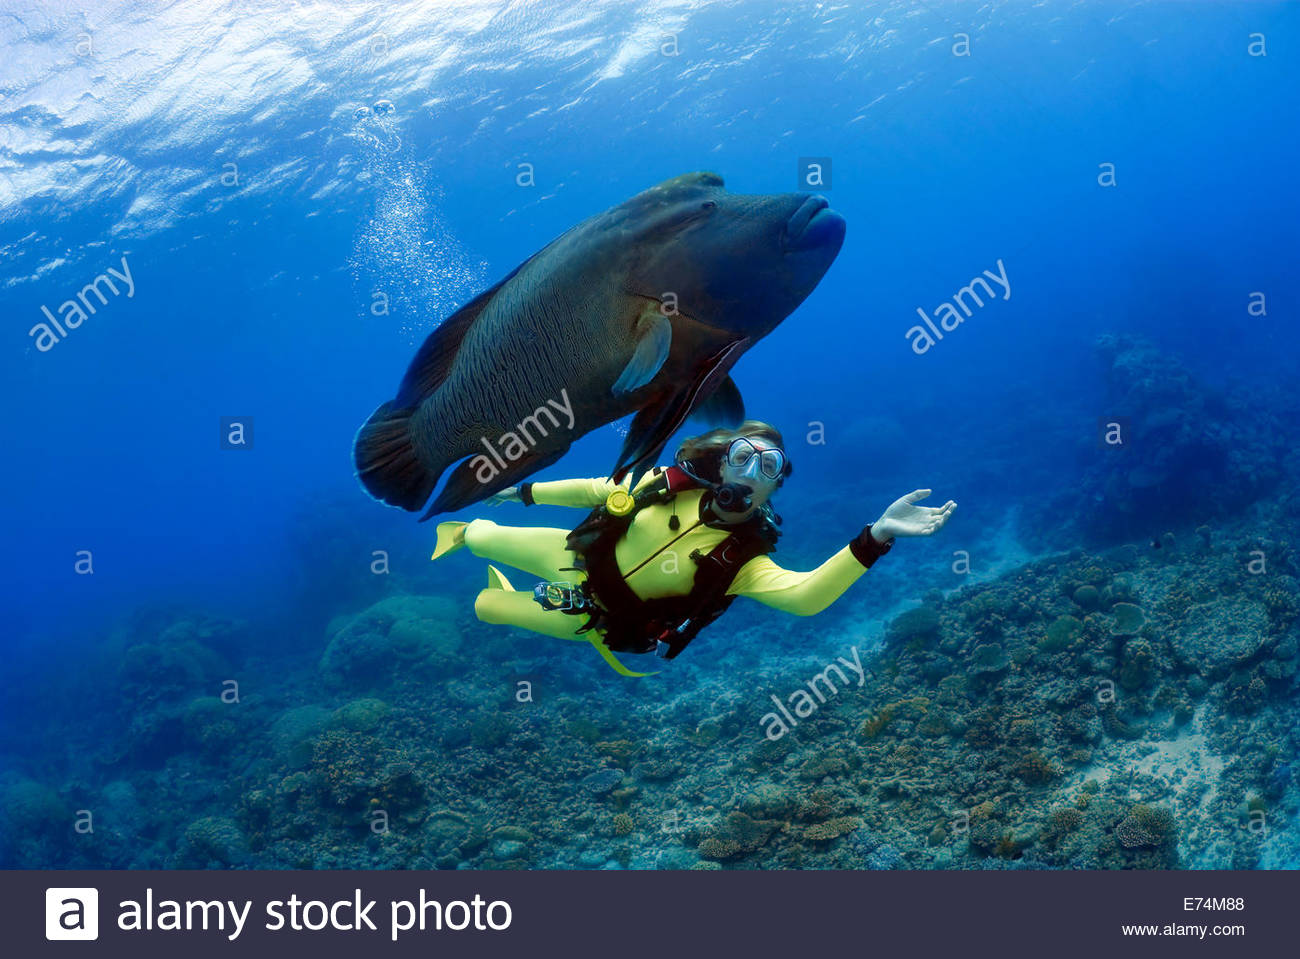 Scuba diving with fish Stock Photo